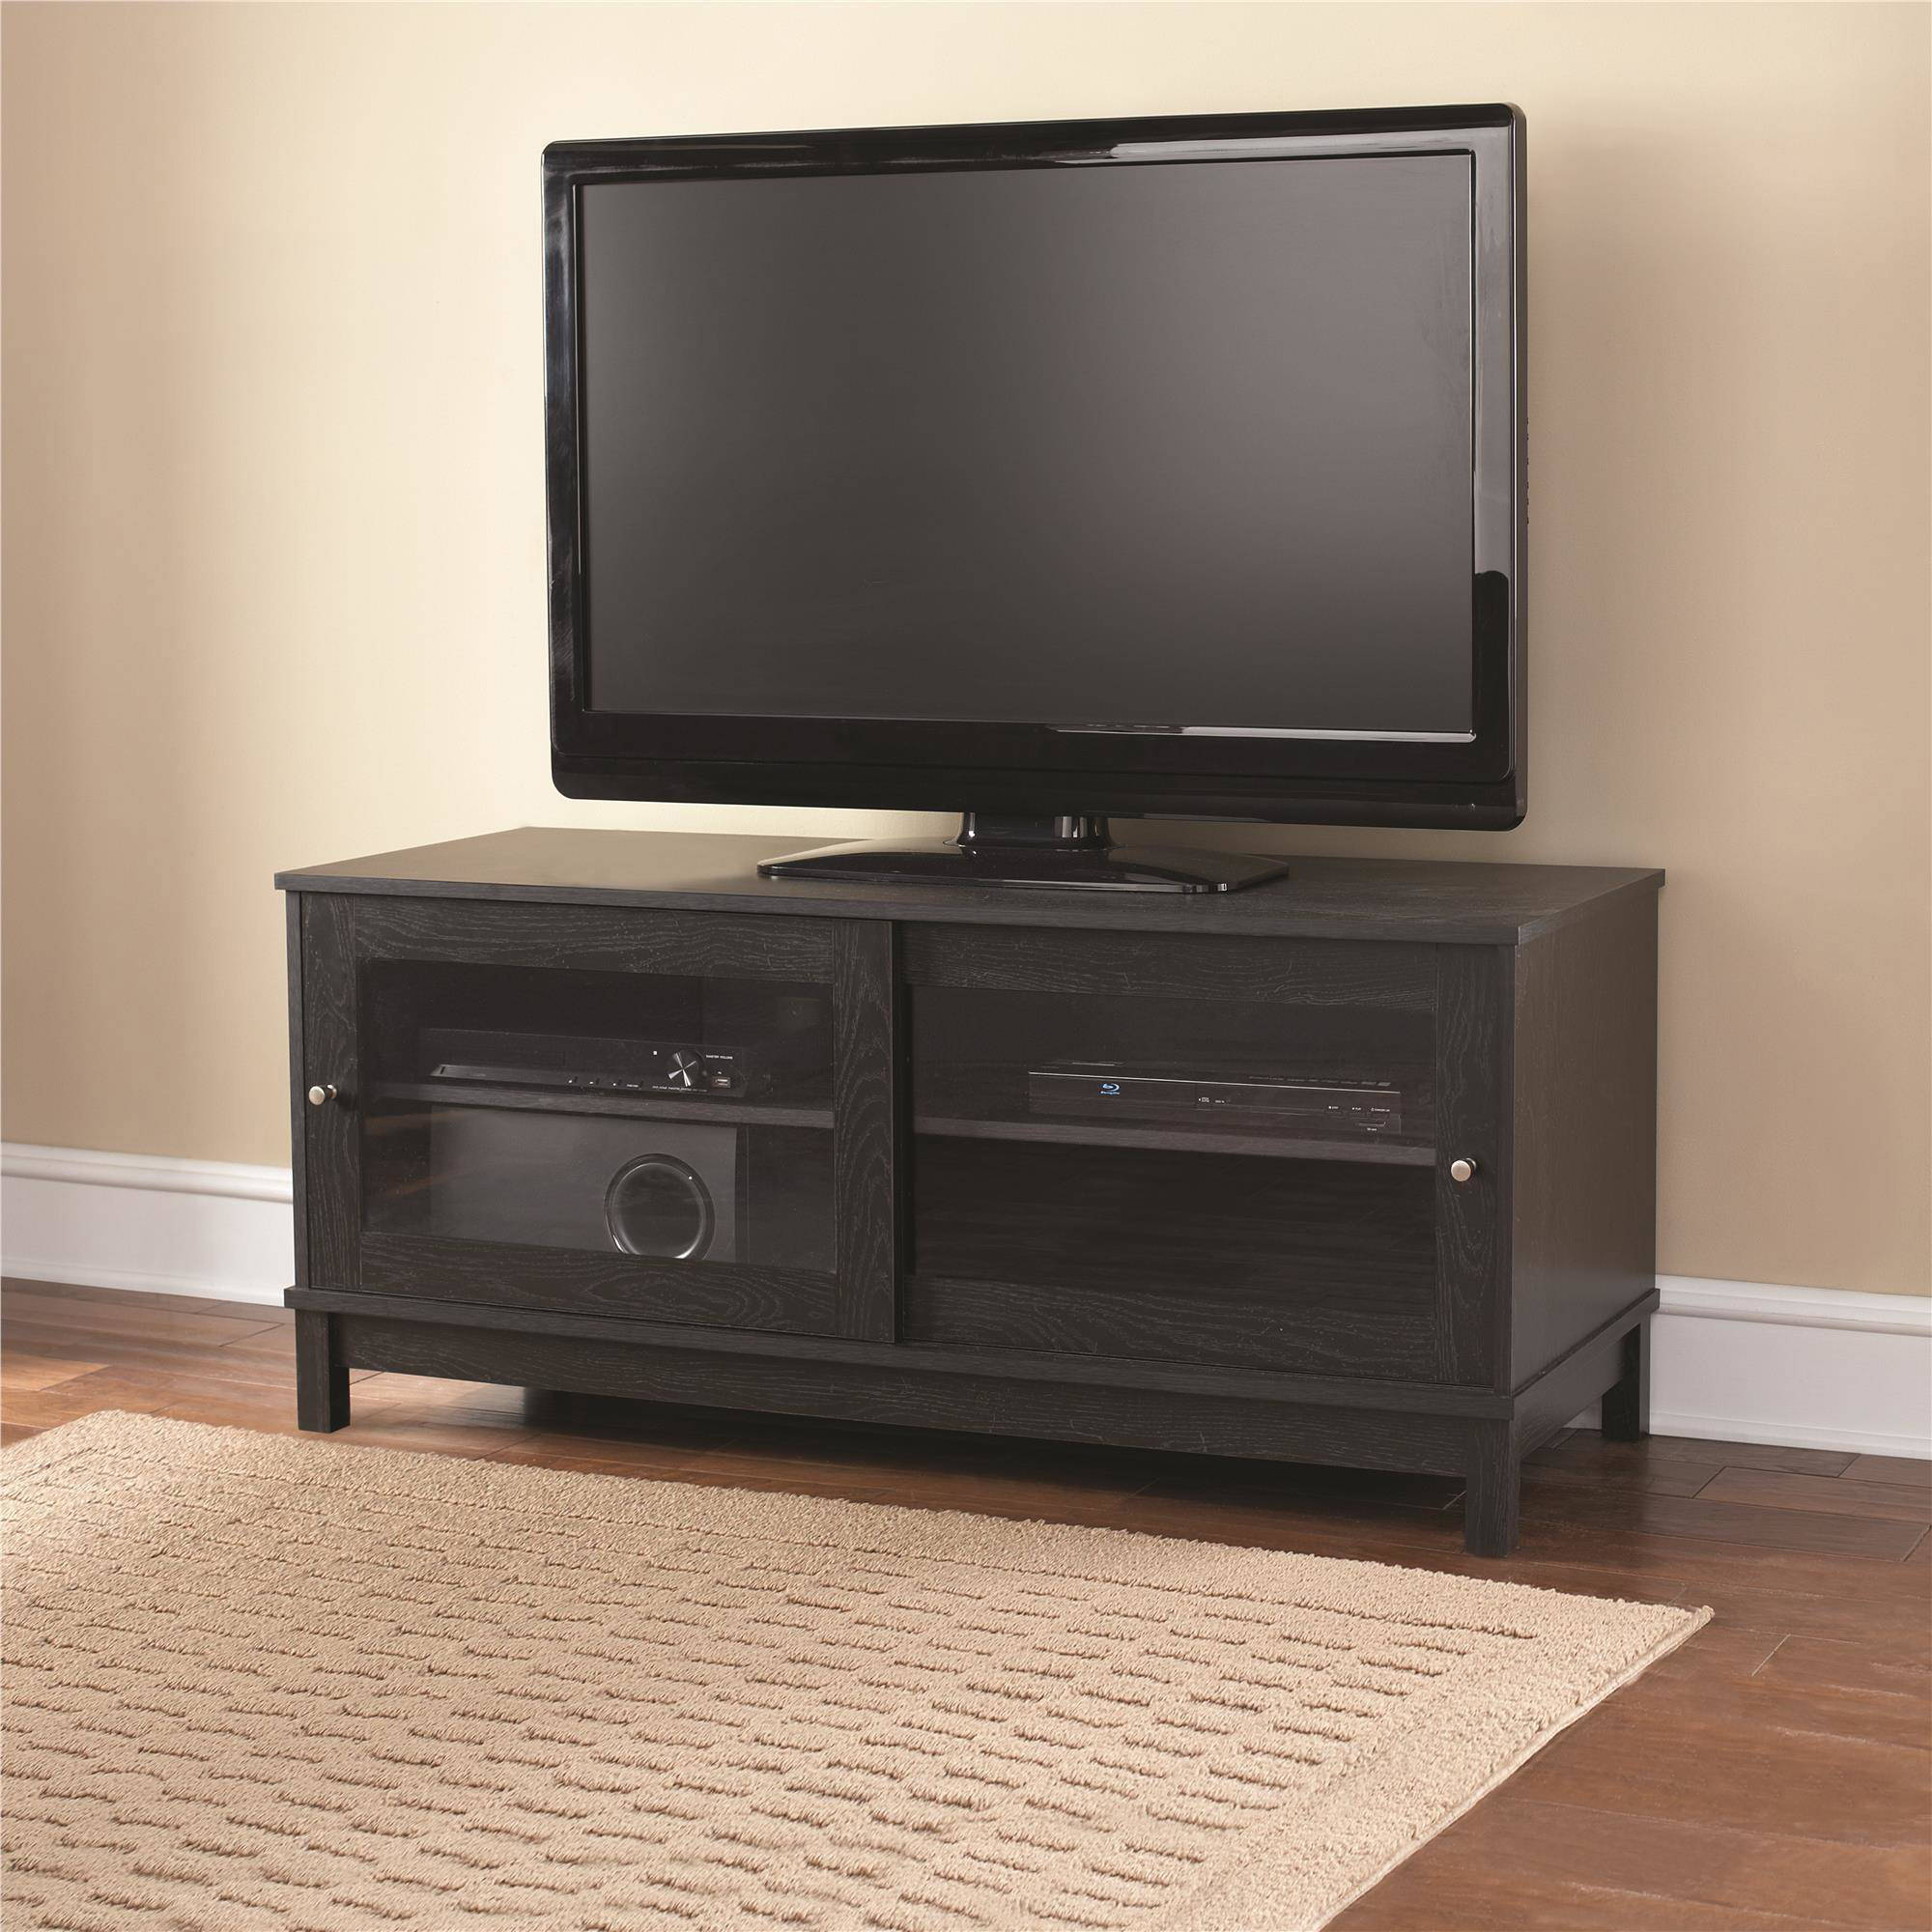 Mainstays 55 Tv Stand With Sliding Glass Doors Multiple Colors